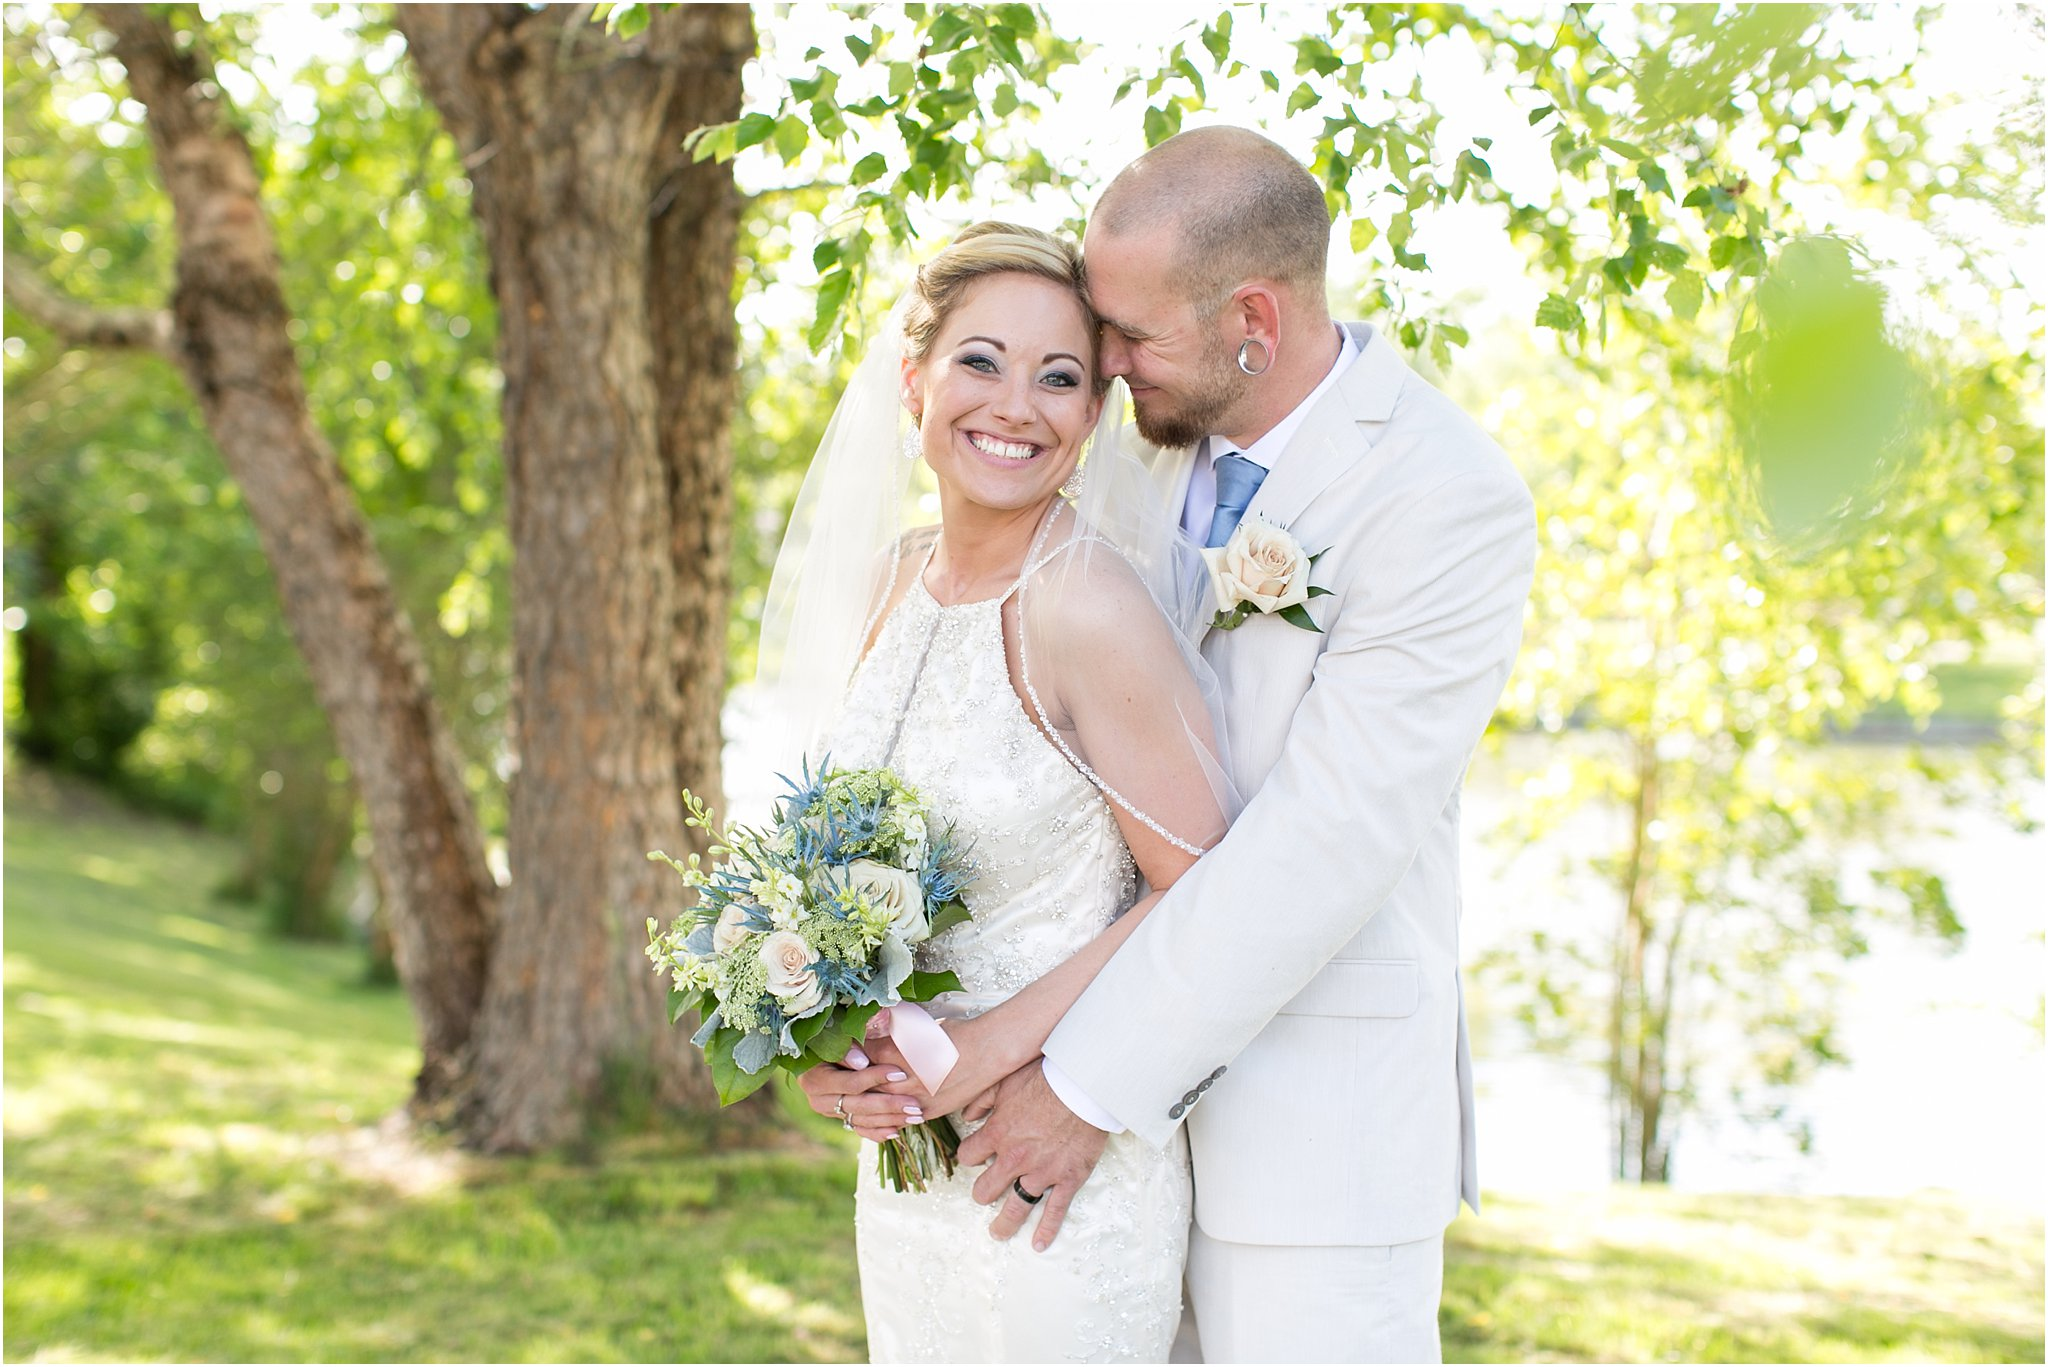 jessica_ryan_photography_virginia_virginiabeachweddingphotographer_studioIdo_backyardwedding_waterfrontwedding_1671